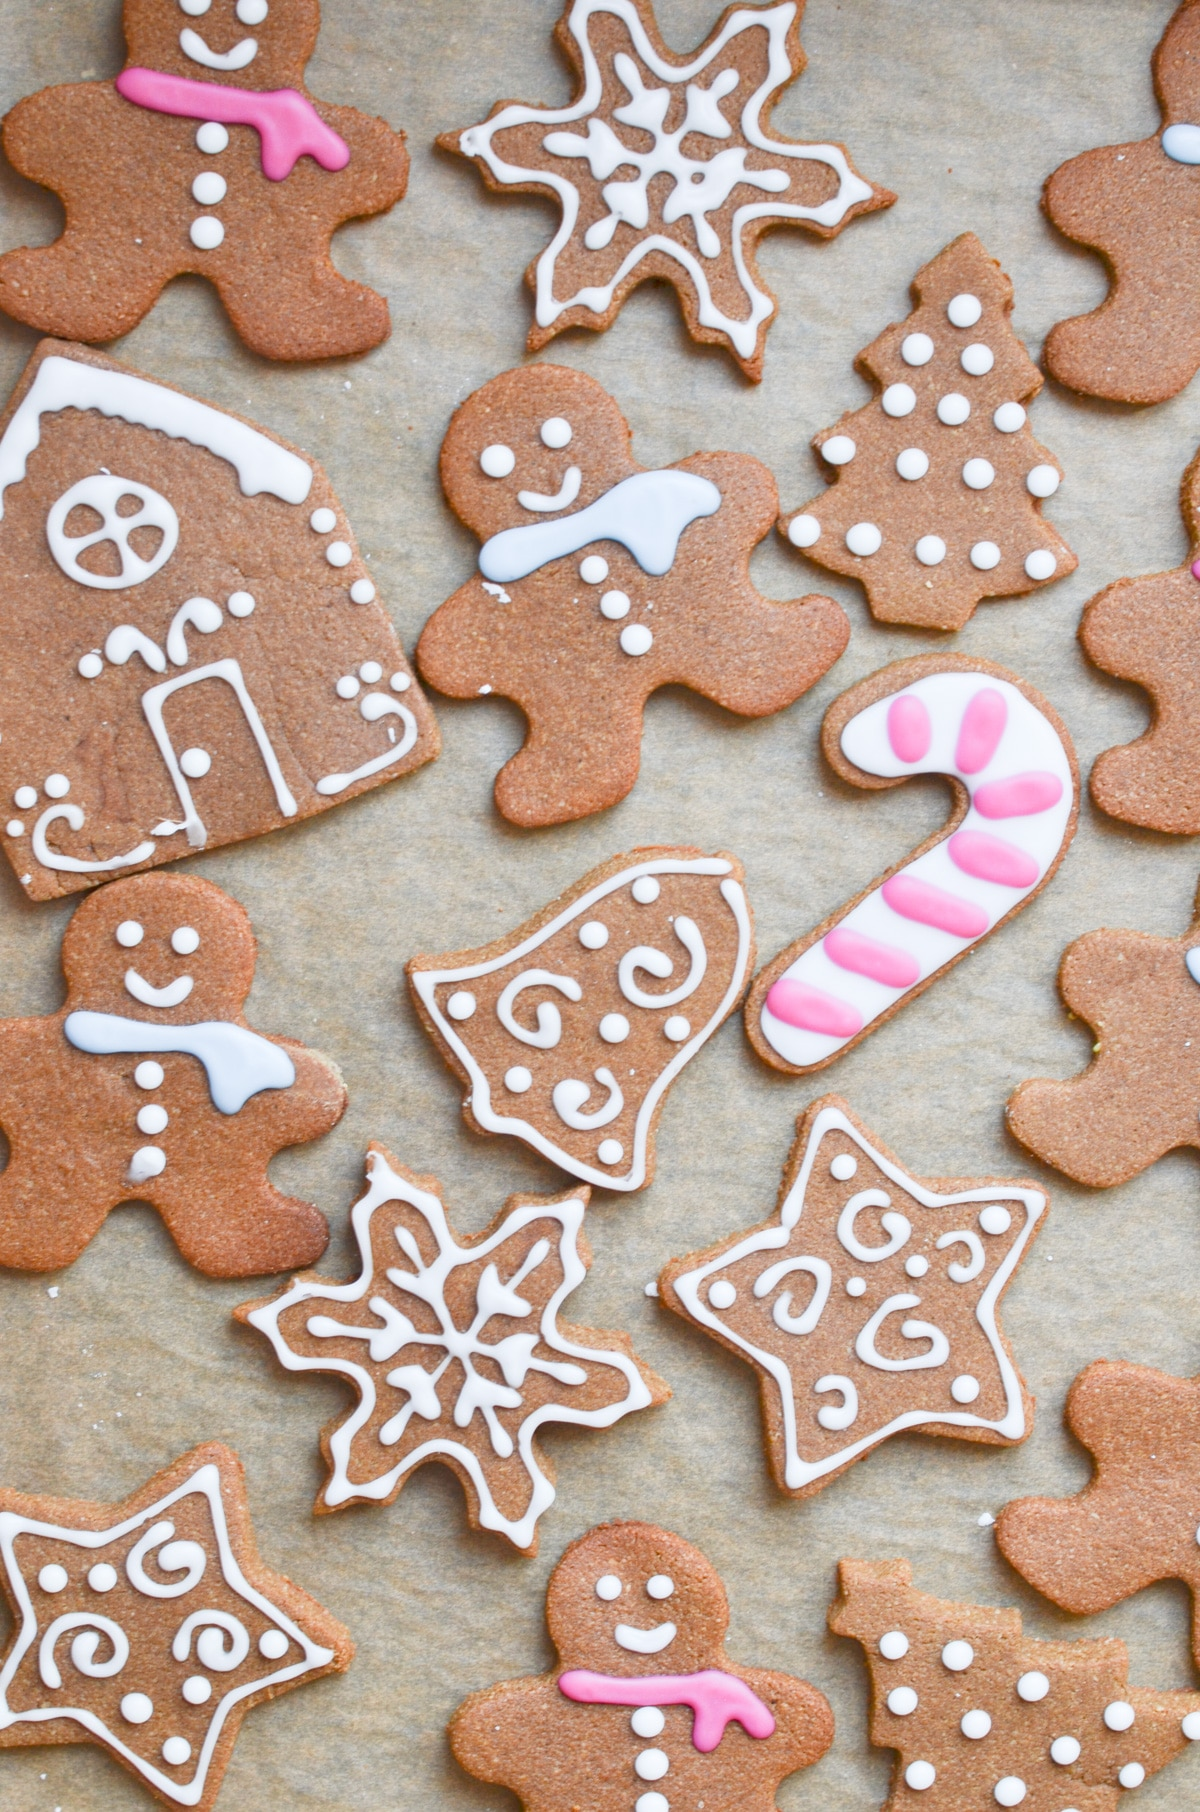 decorated gingerbread cookies on parchment lined baking sheet.